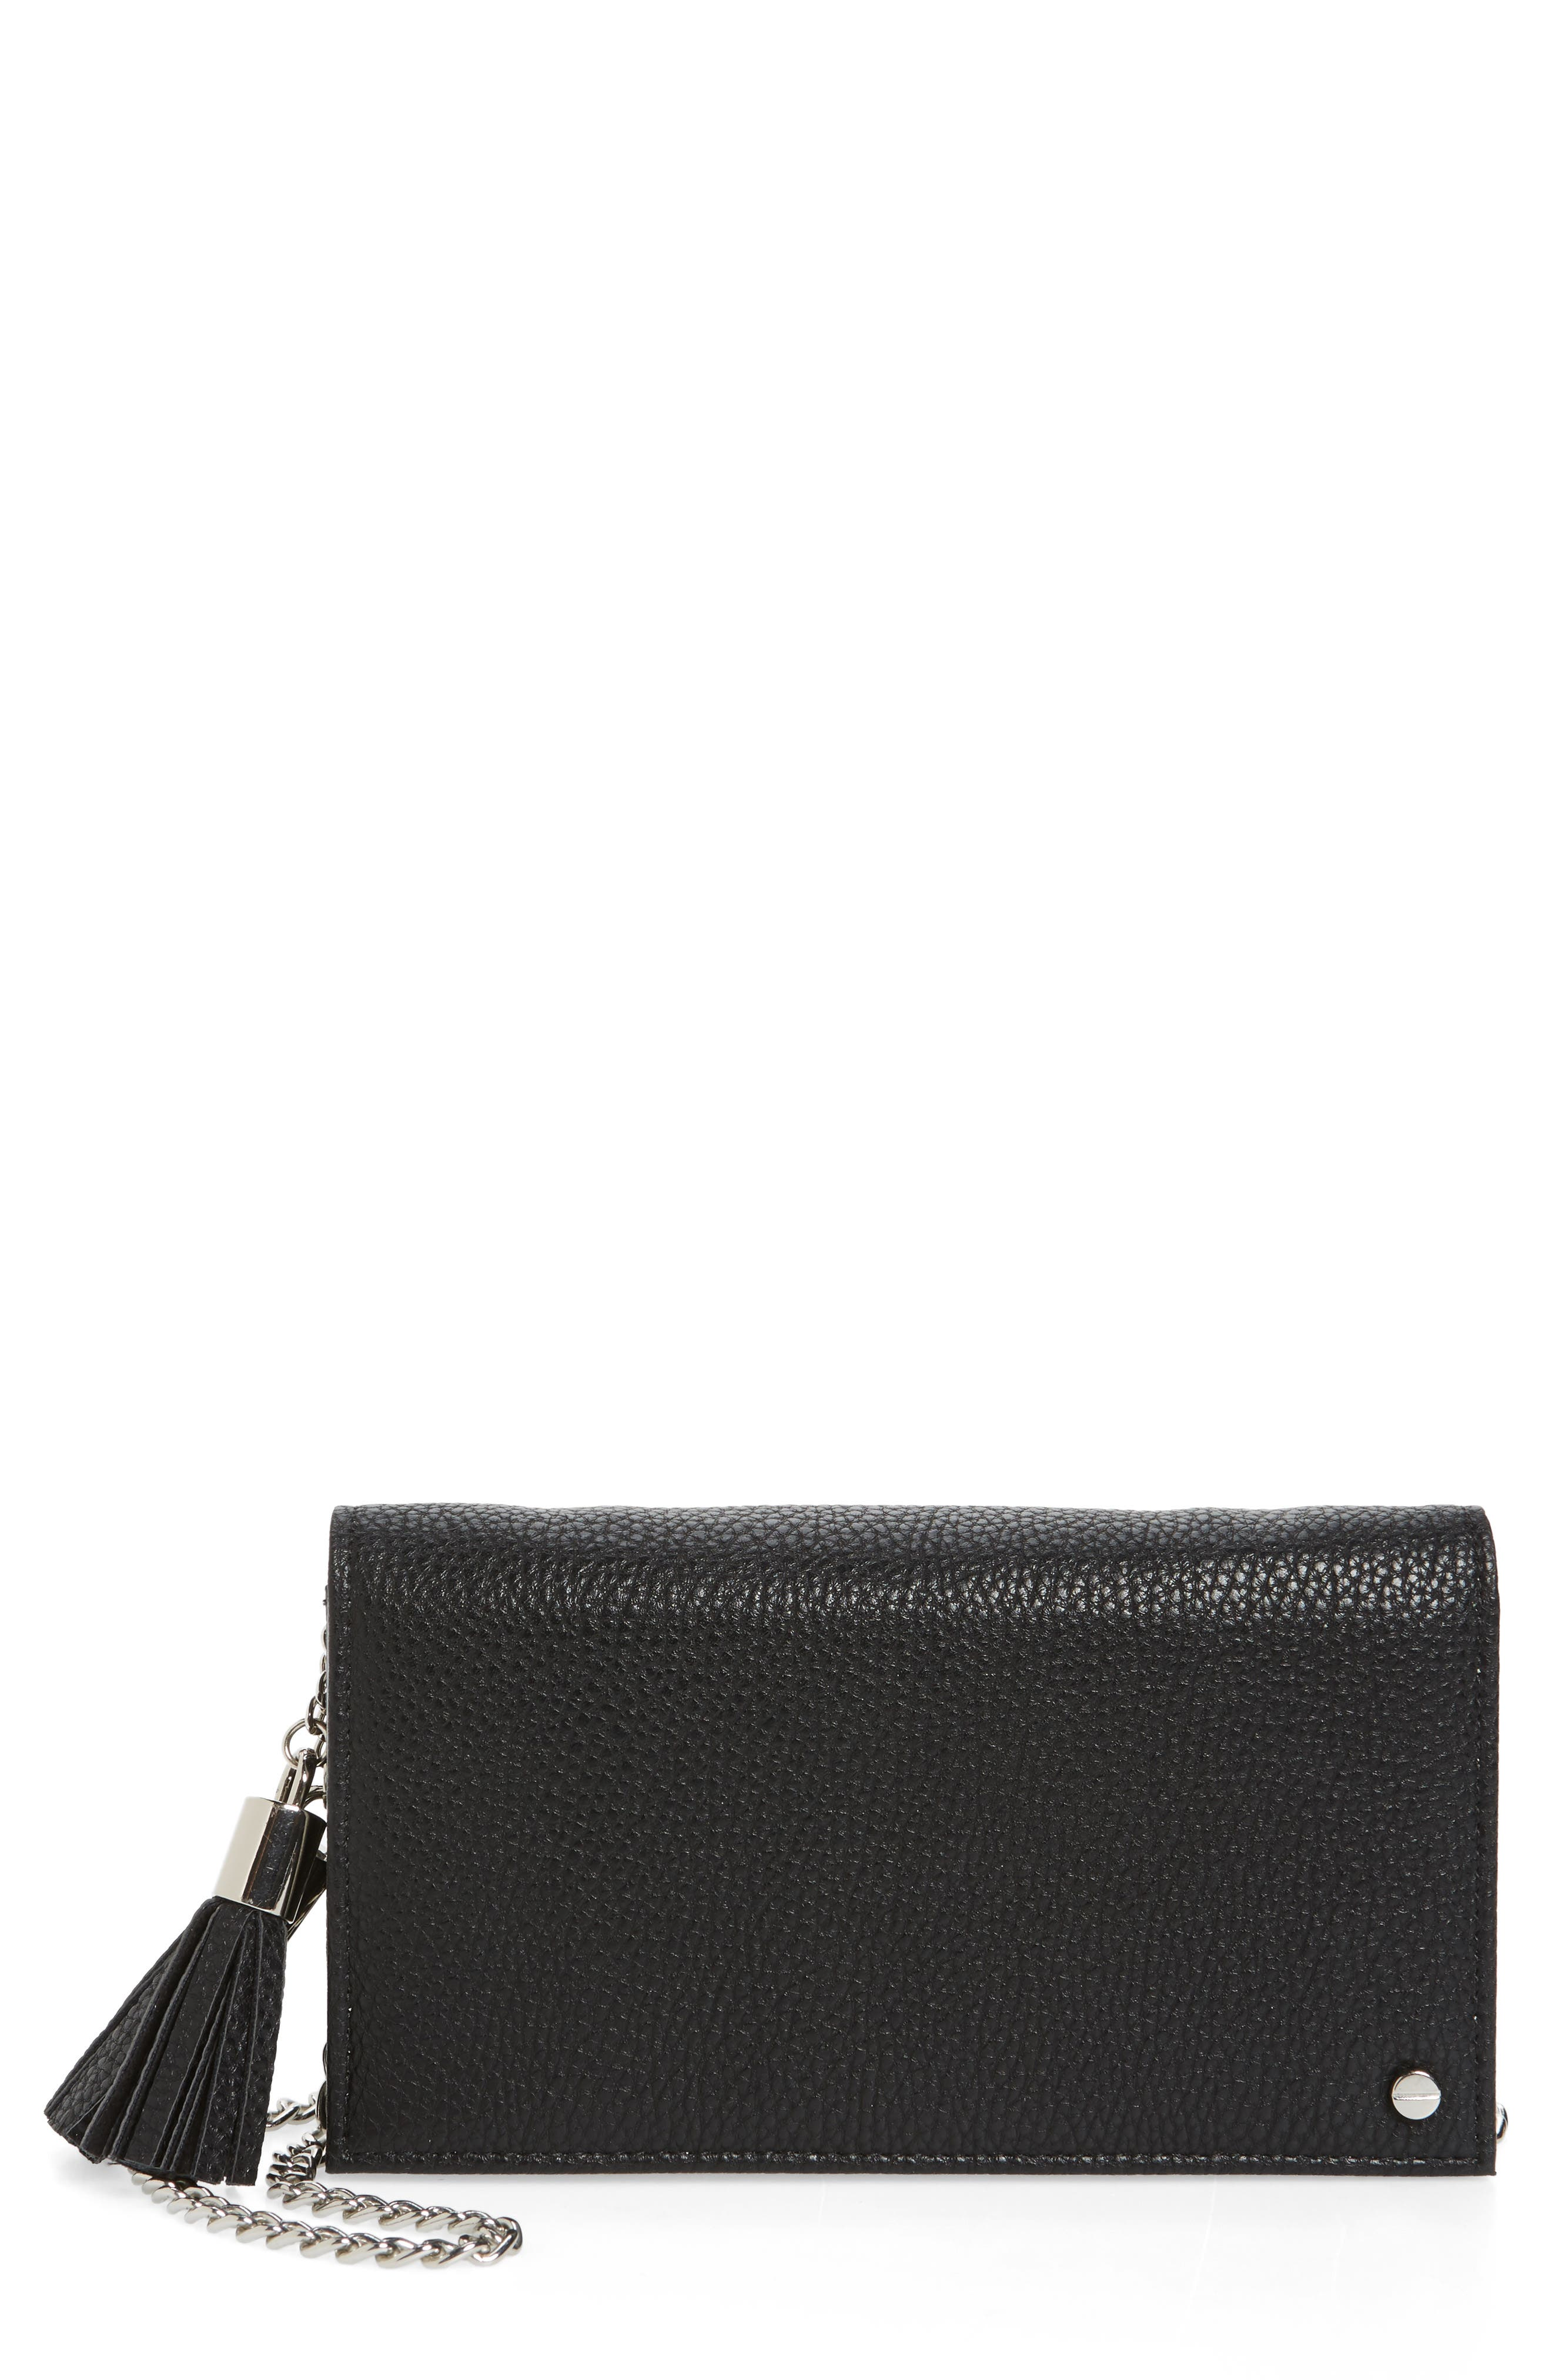 Tassel Convertible Vegan Leather Clutch,                             Main thumbnail 1, color,                             001